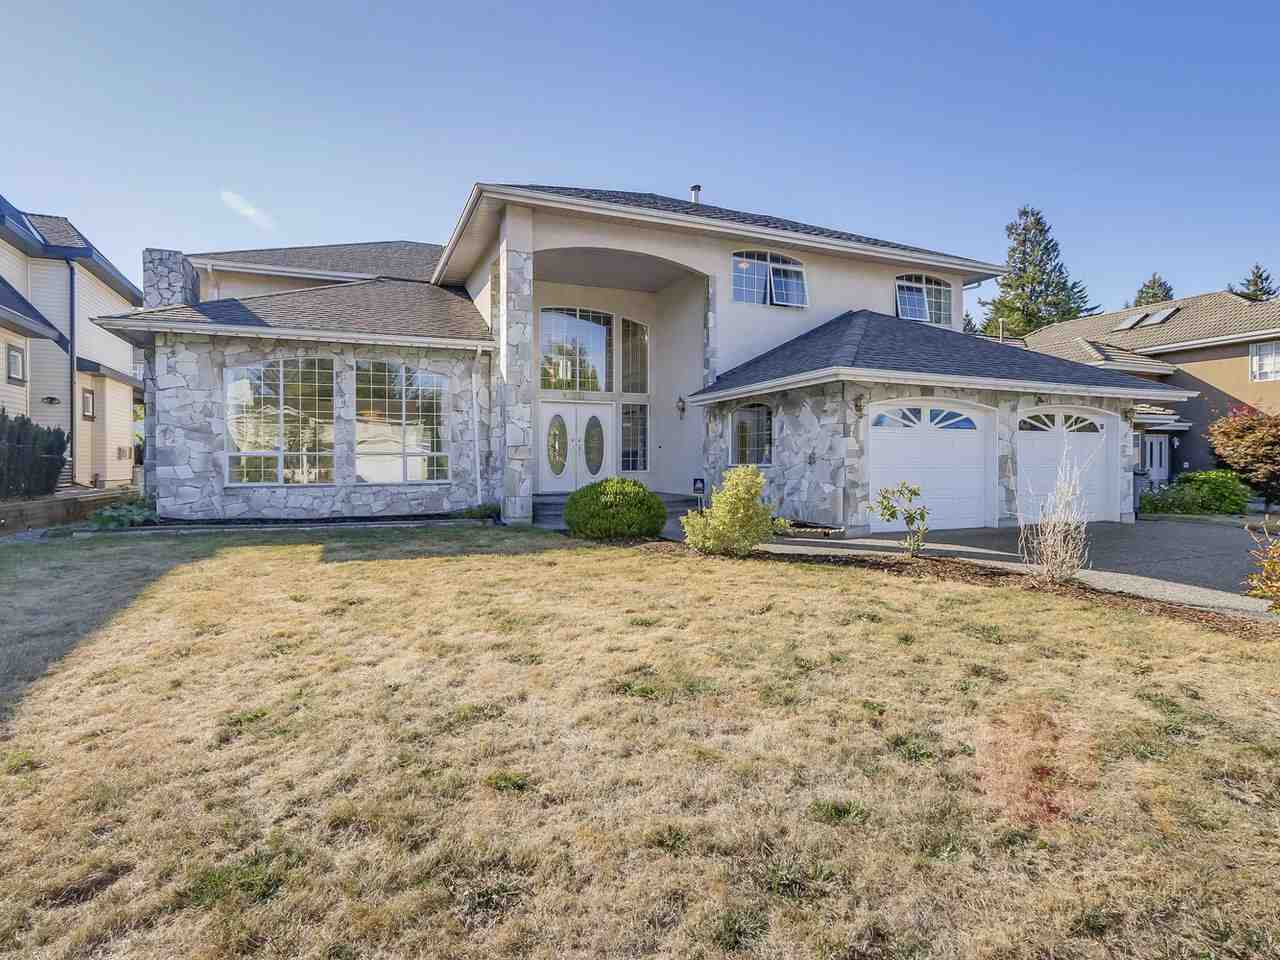 Welcome to 9671 157th street in Guildford! One of the best neighbourhoods in Surrey, this home has it all! Great for a small or growing family, this 2 level home boasts a bedroom on the main & 4 more upstairs w/ large games room as well as 3 full bathrooms. 3700 sq ft living space. There is a potential for a side suite or in-law suite if needed. Substantially renovated in 2016. Hard to find a 3700 sq ft on an almost 10,000 sq ft lot with more than 60 ft frontage these days! Great home for many many years to come with lots of updates (5 yr old furnace, 3 yr HWT) real 2 car garage, 3 gas F/P ample street and driveway parking, close to Surrey Memorial, Hwy 1, Guildford mall, many parks & is in William F Davidson elementary & North Surrey High school catchments. Open house Oct 21/22nd 1-4 p.m.